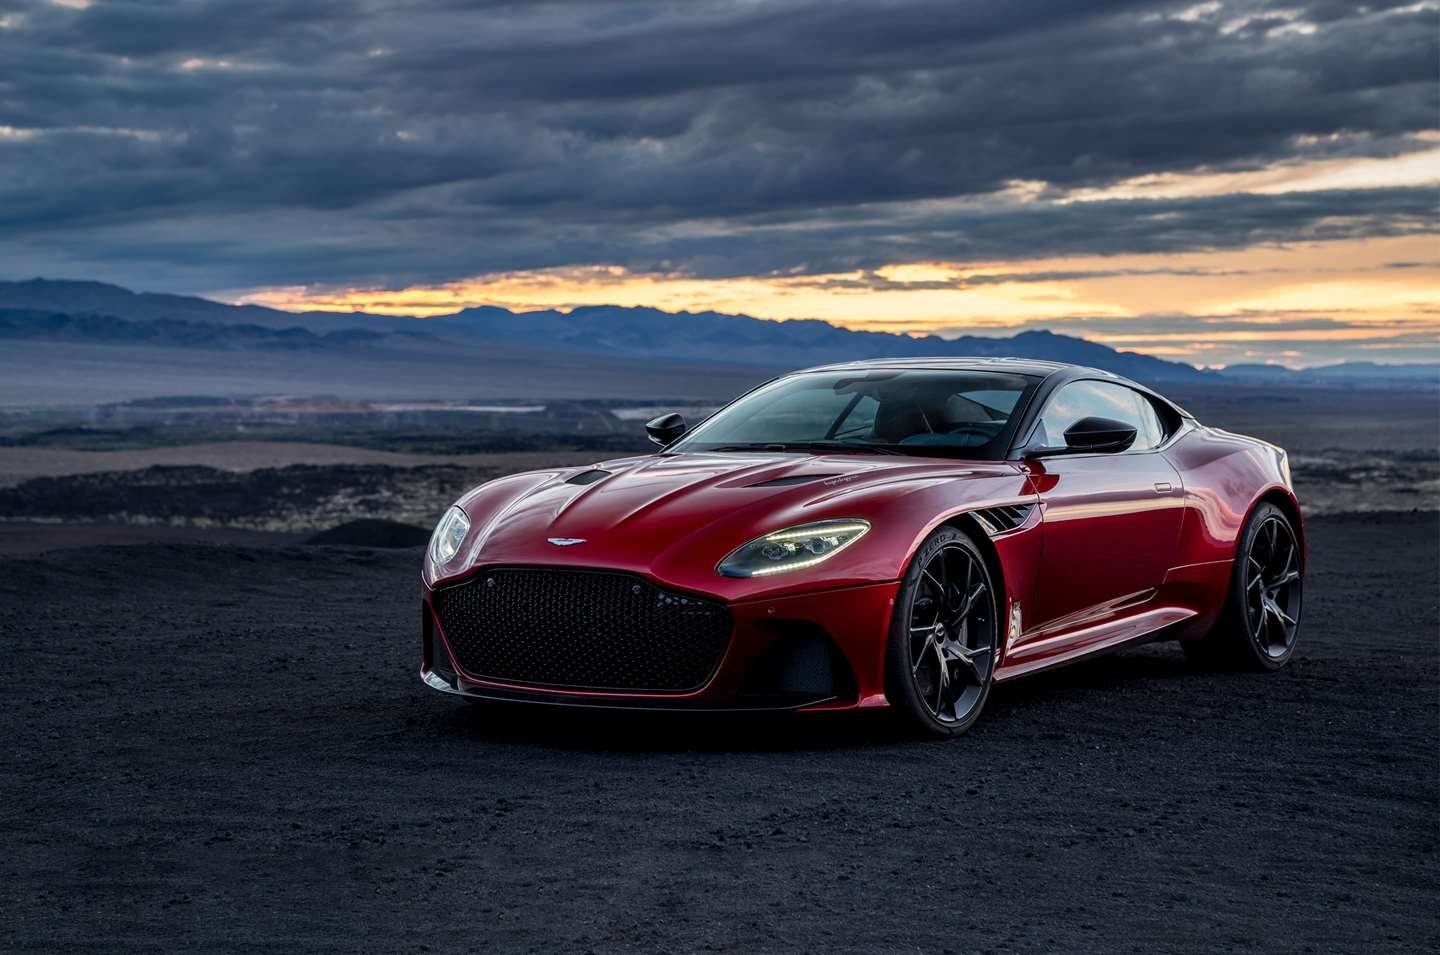 2018 Aston Martin DBS Superleggera V12 Price In UAE, Specs